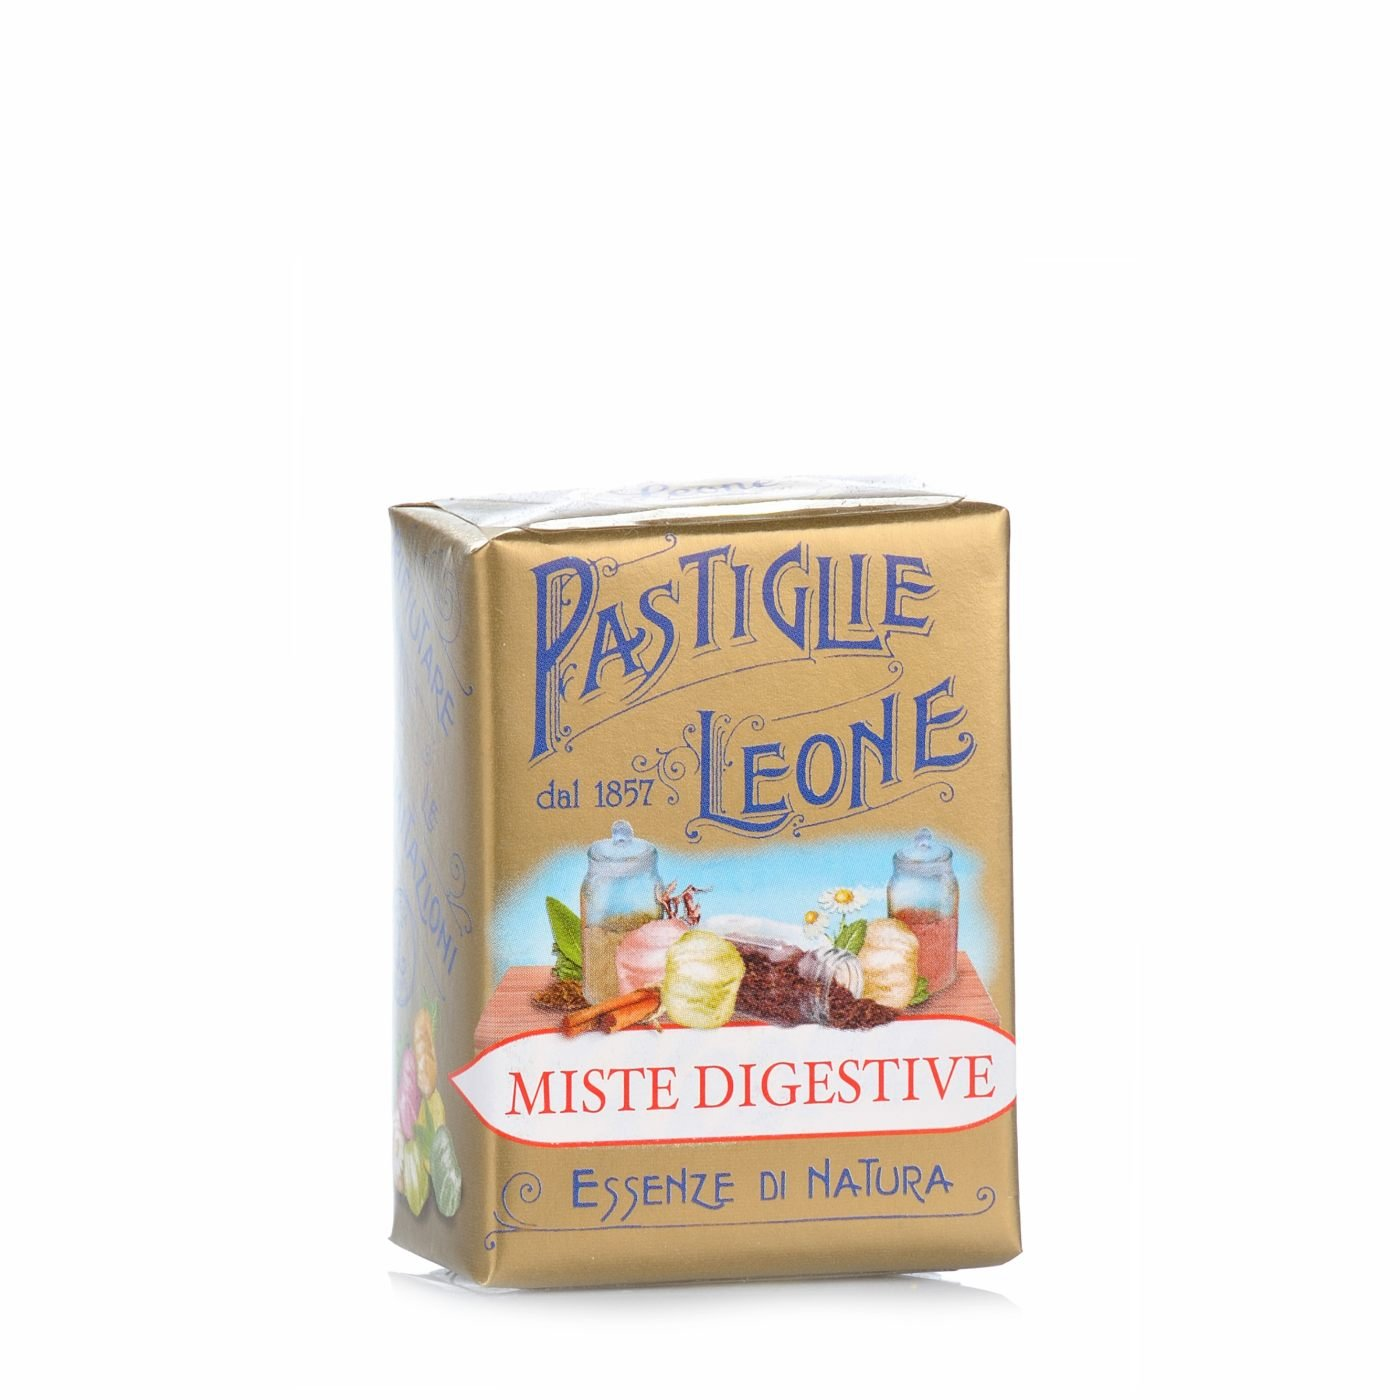 Assorted Digestive Pastilles Leone Eataly